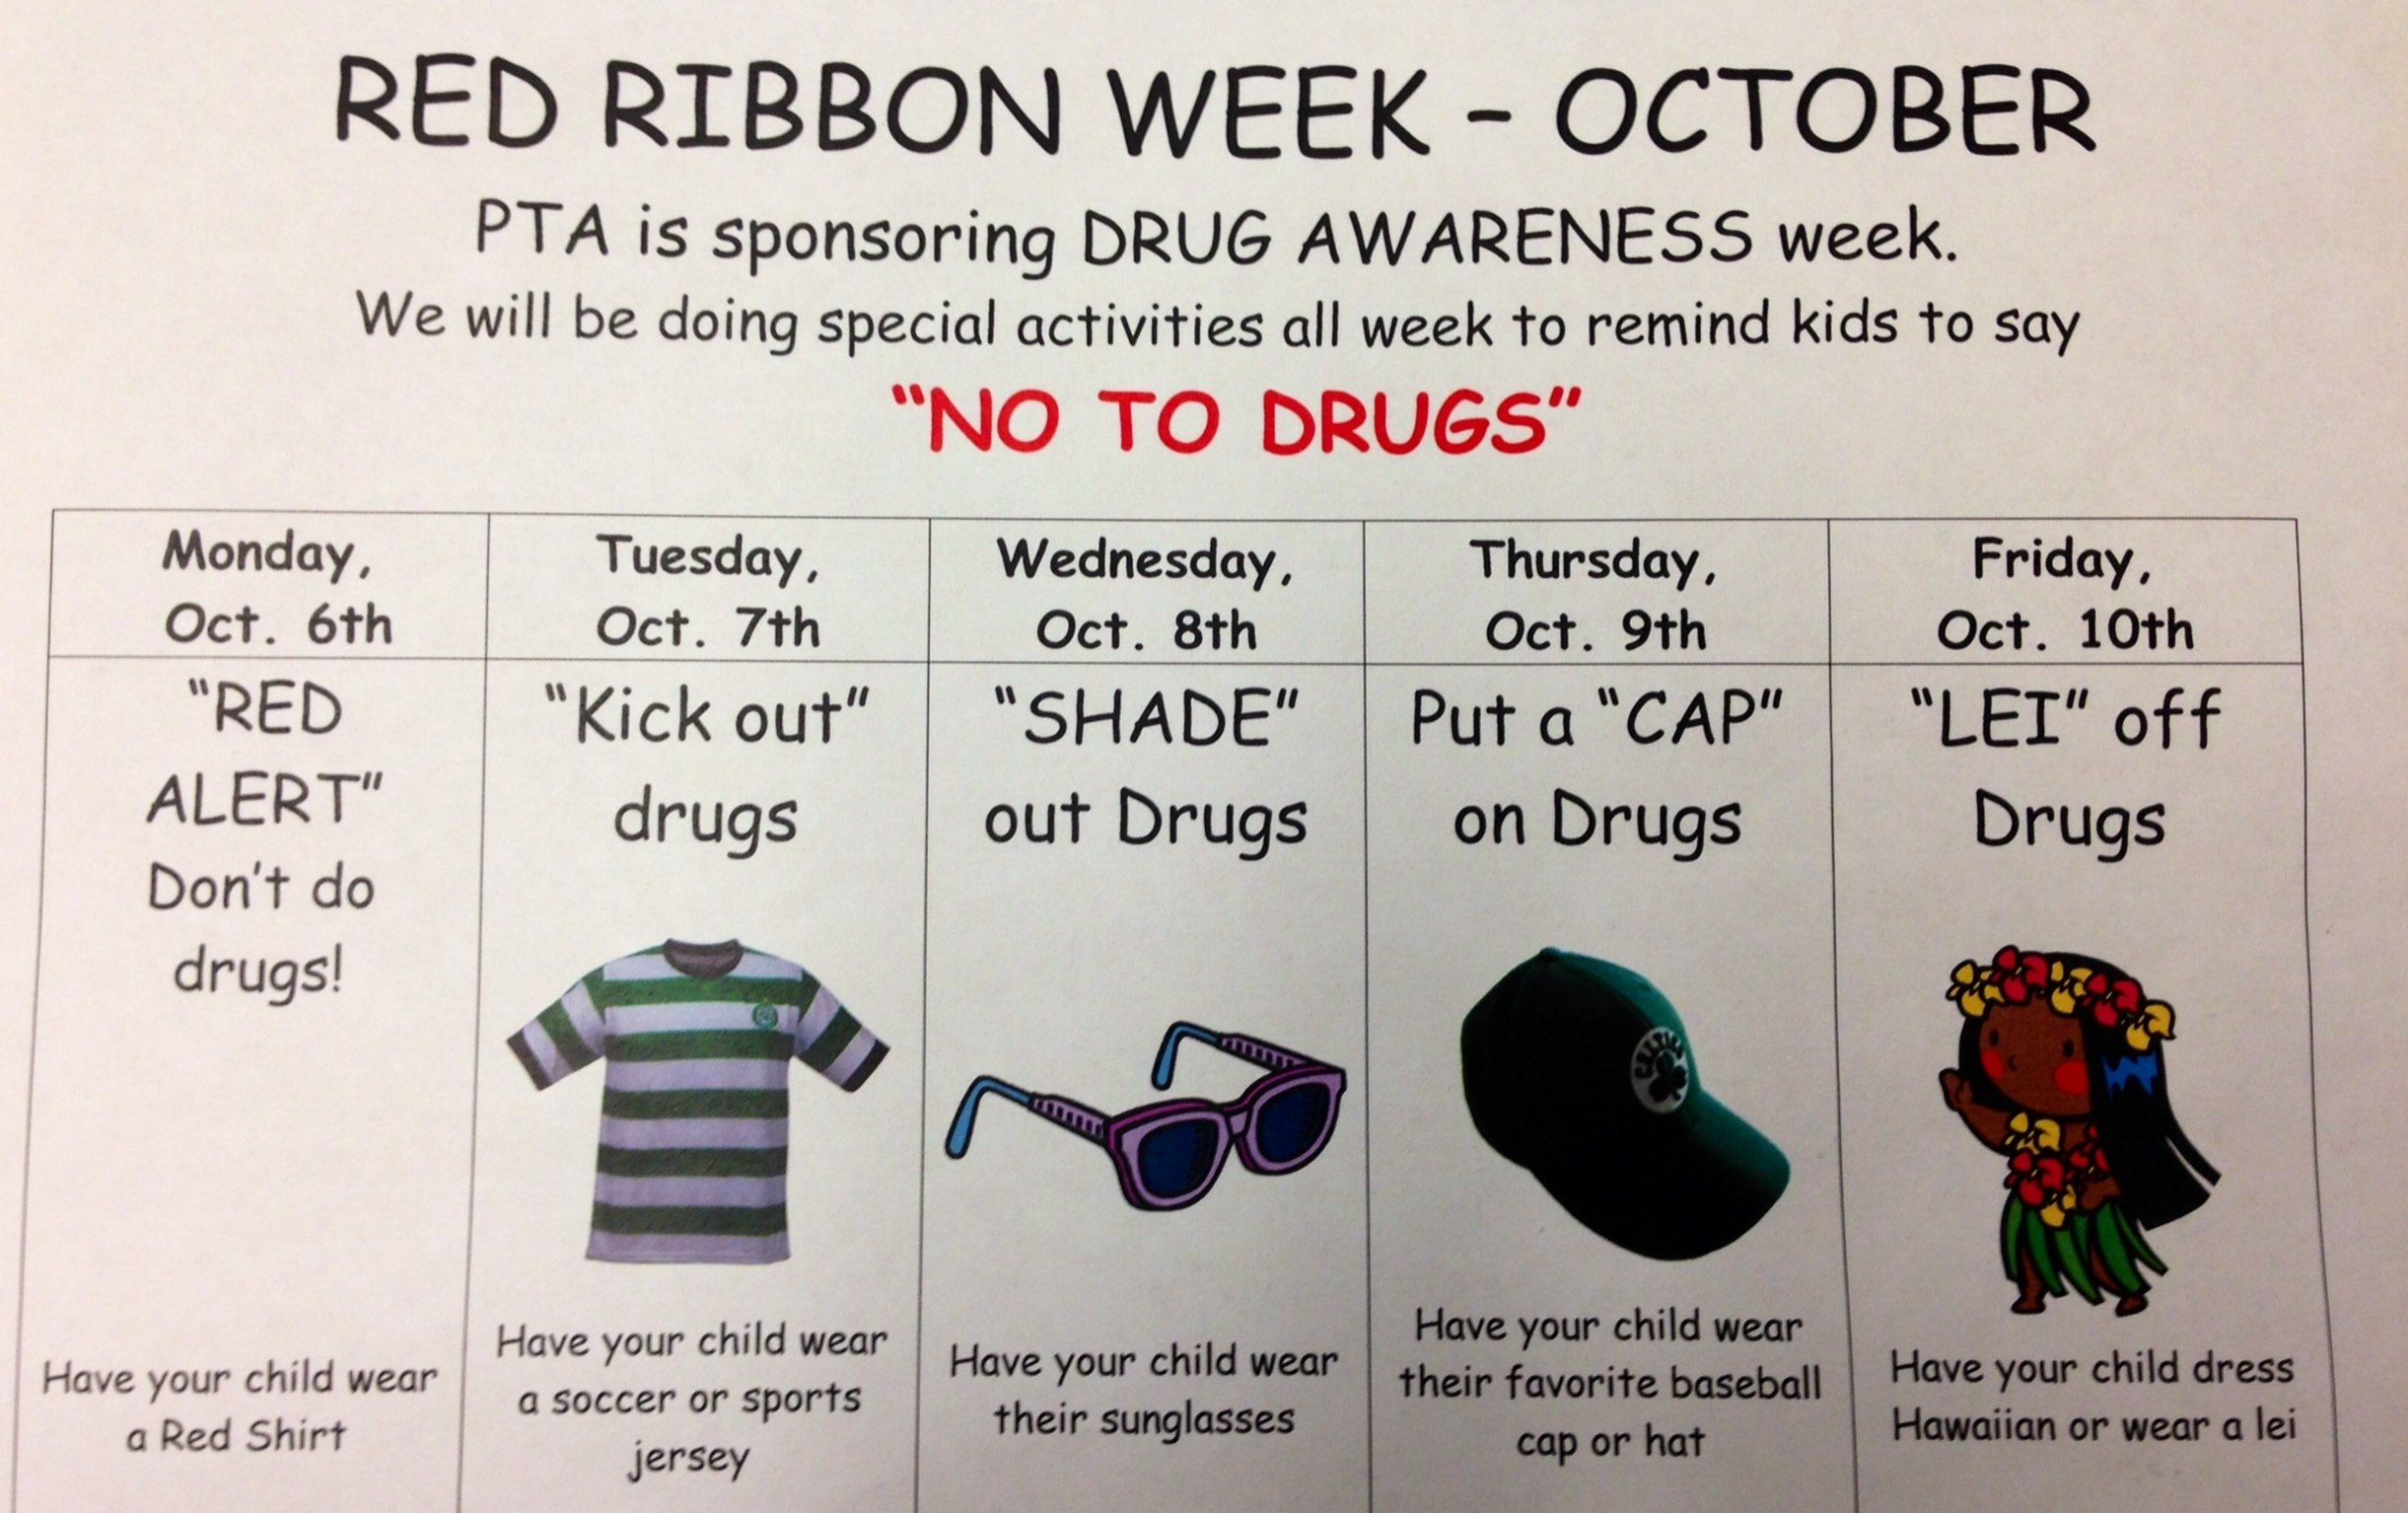 red ribbon week – 21st century educator